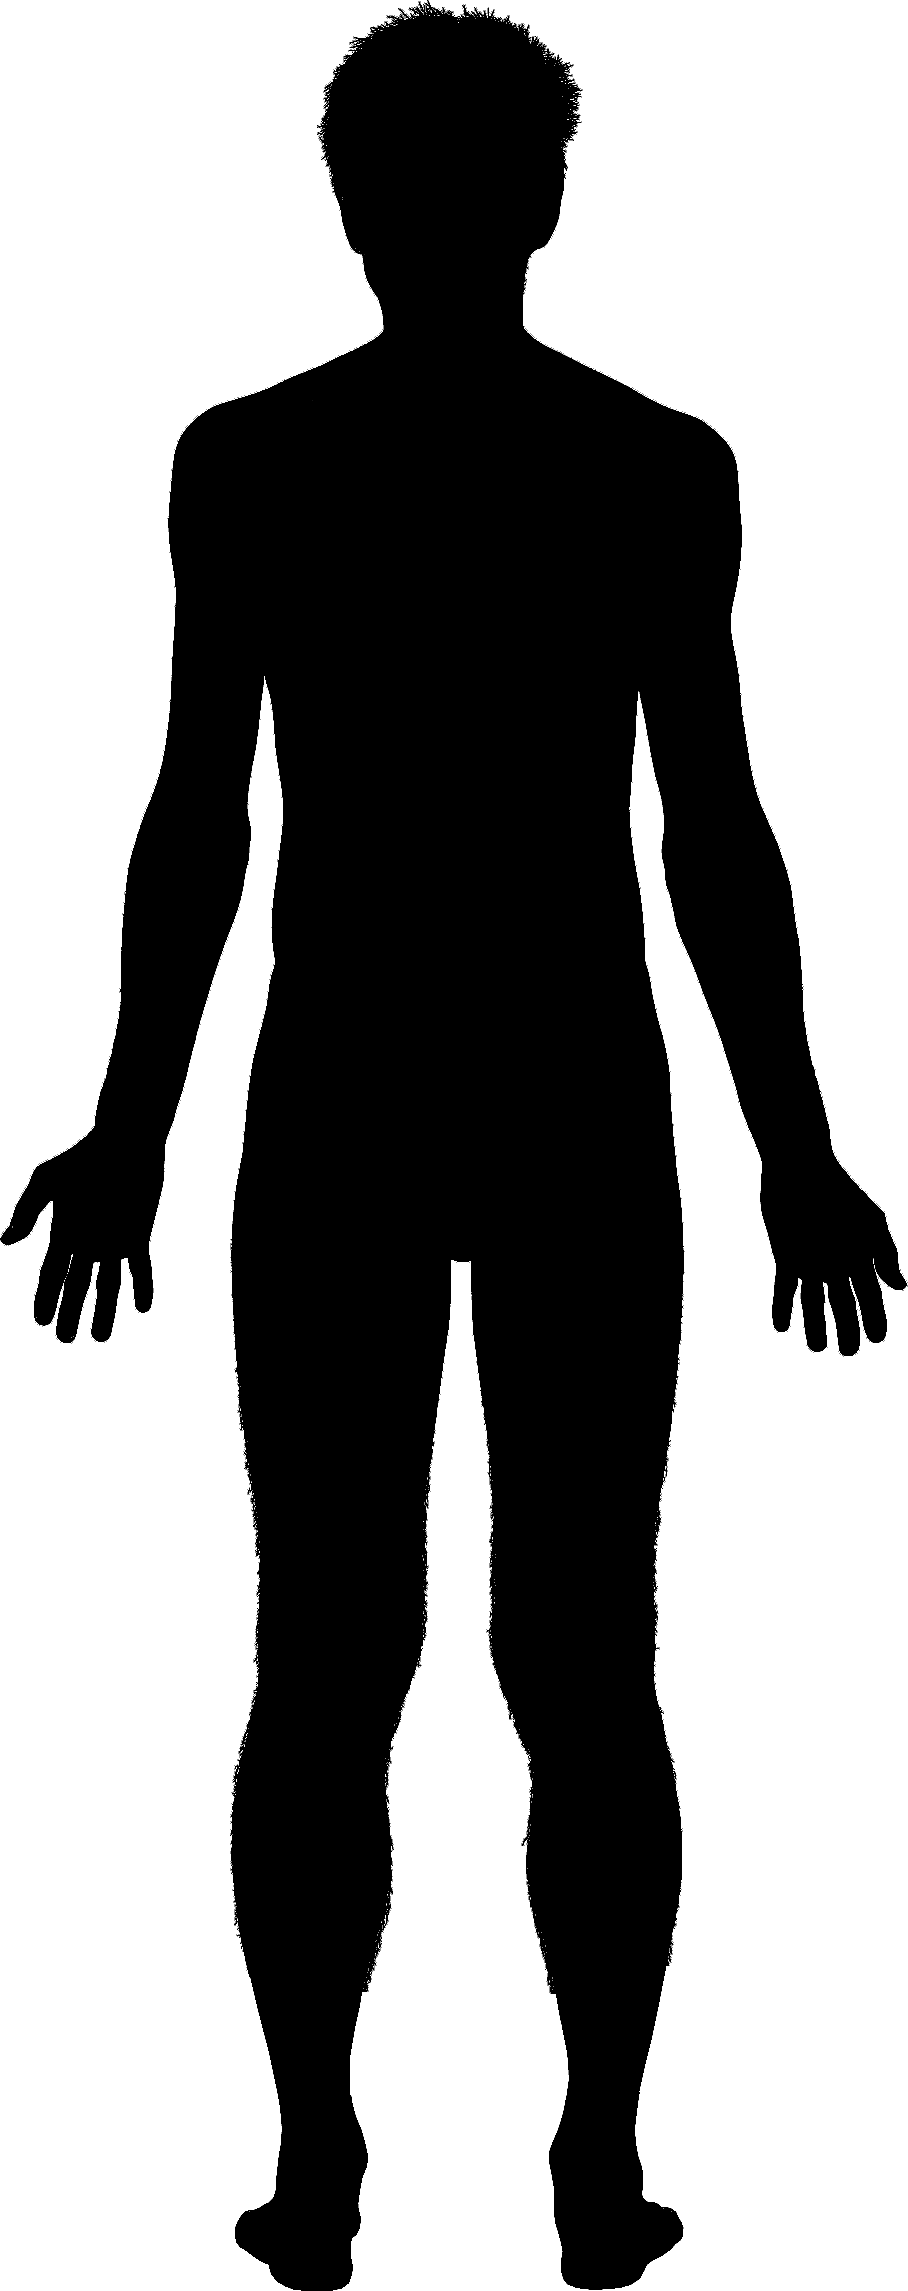 PNG Human Body Outline - 69388